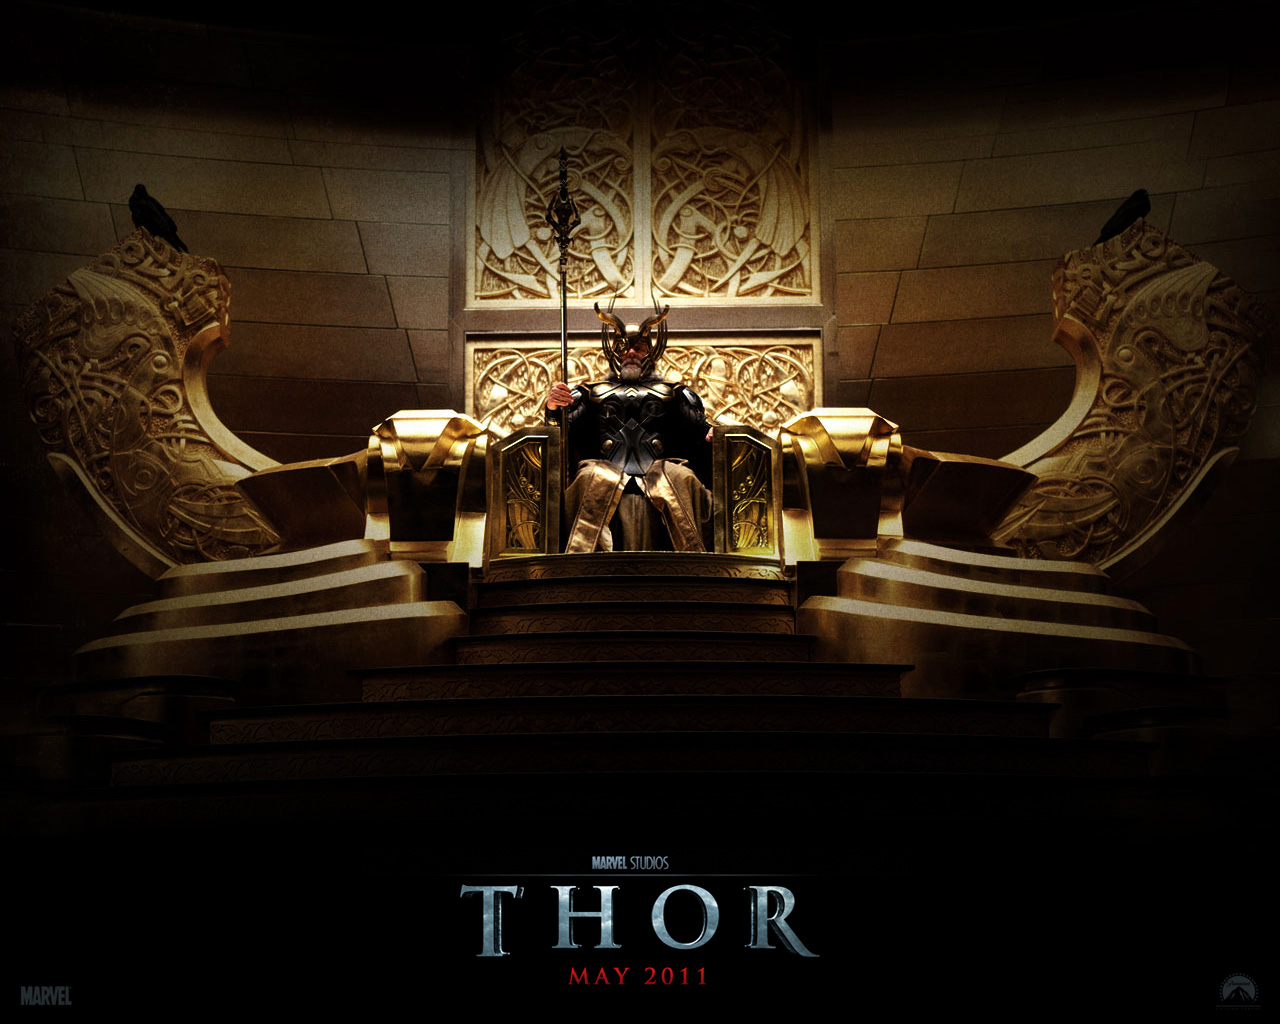 Epic Movie Hd Wallpapers Thor Movie Wallpapers Amp Posters 2011